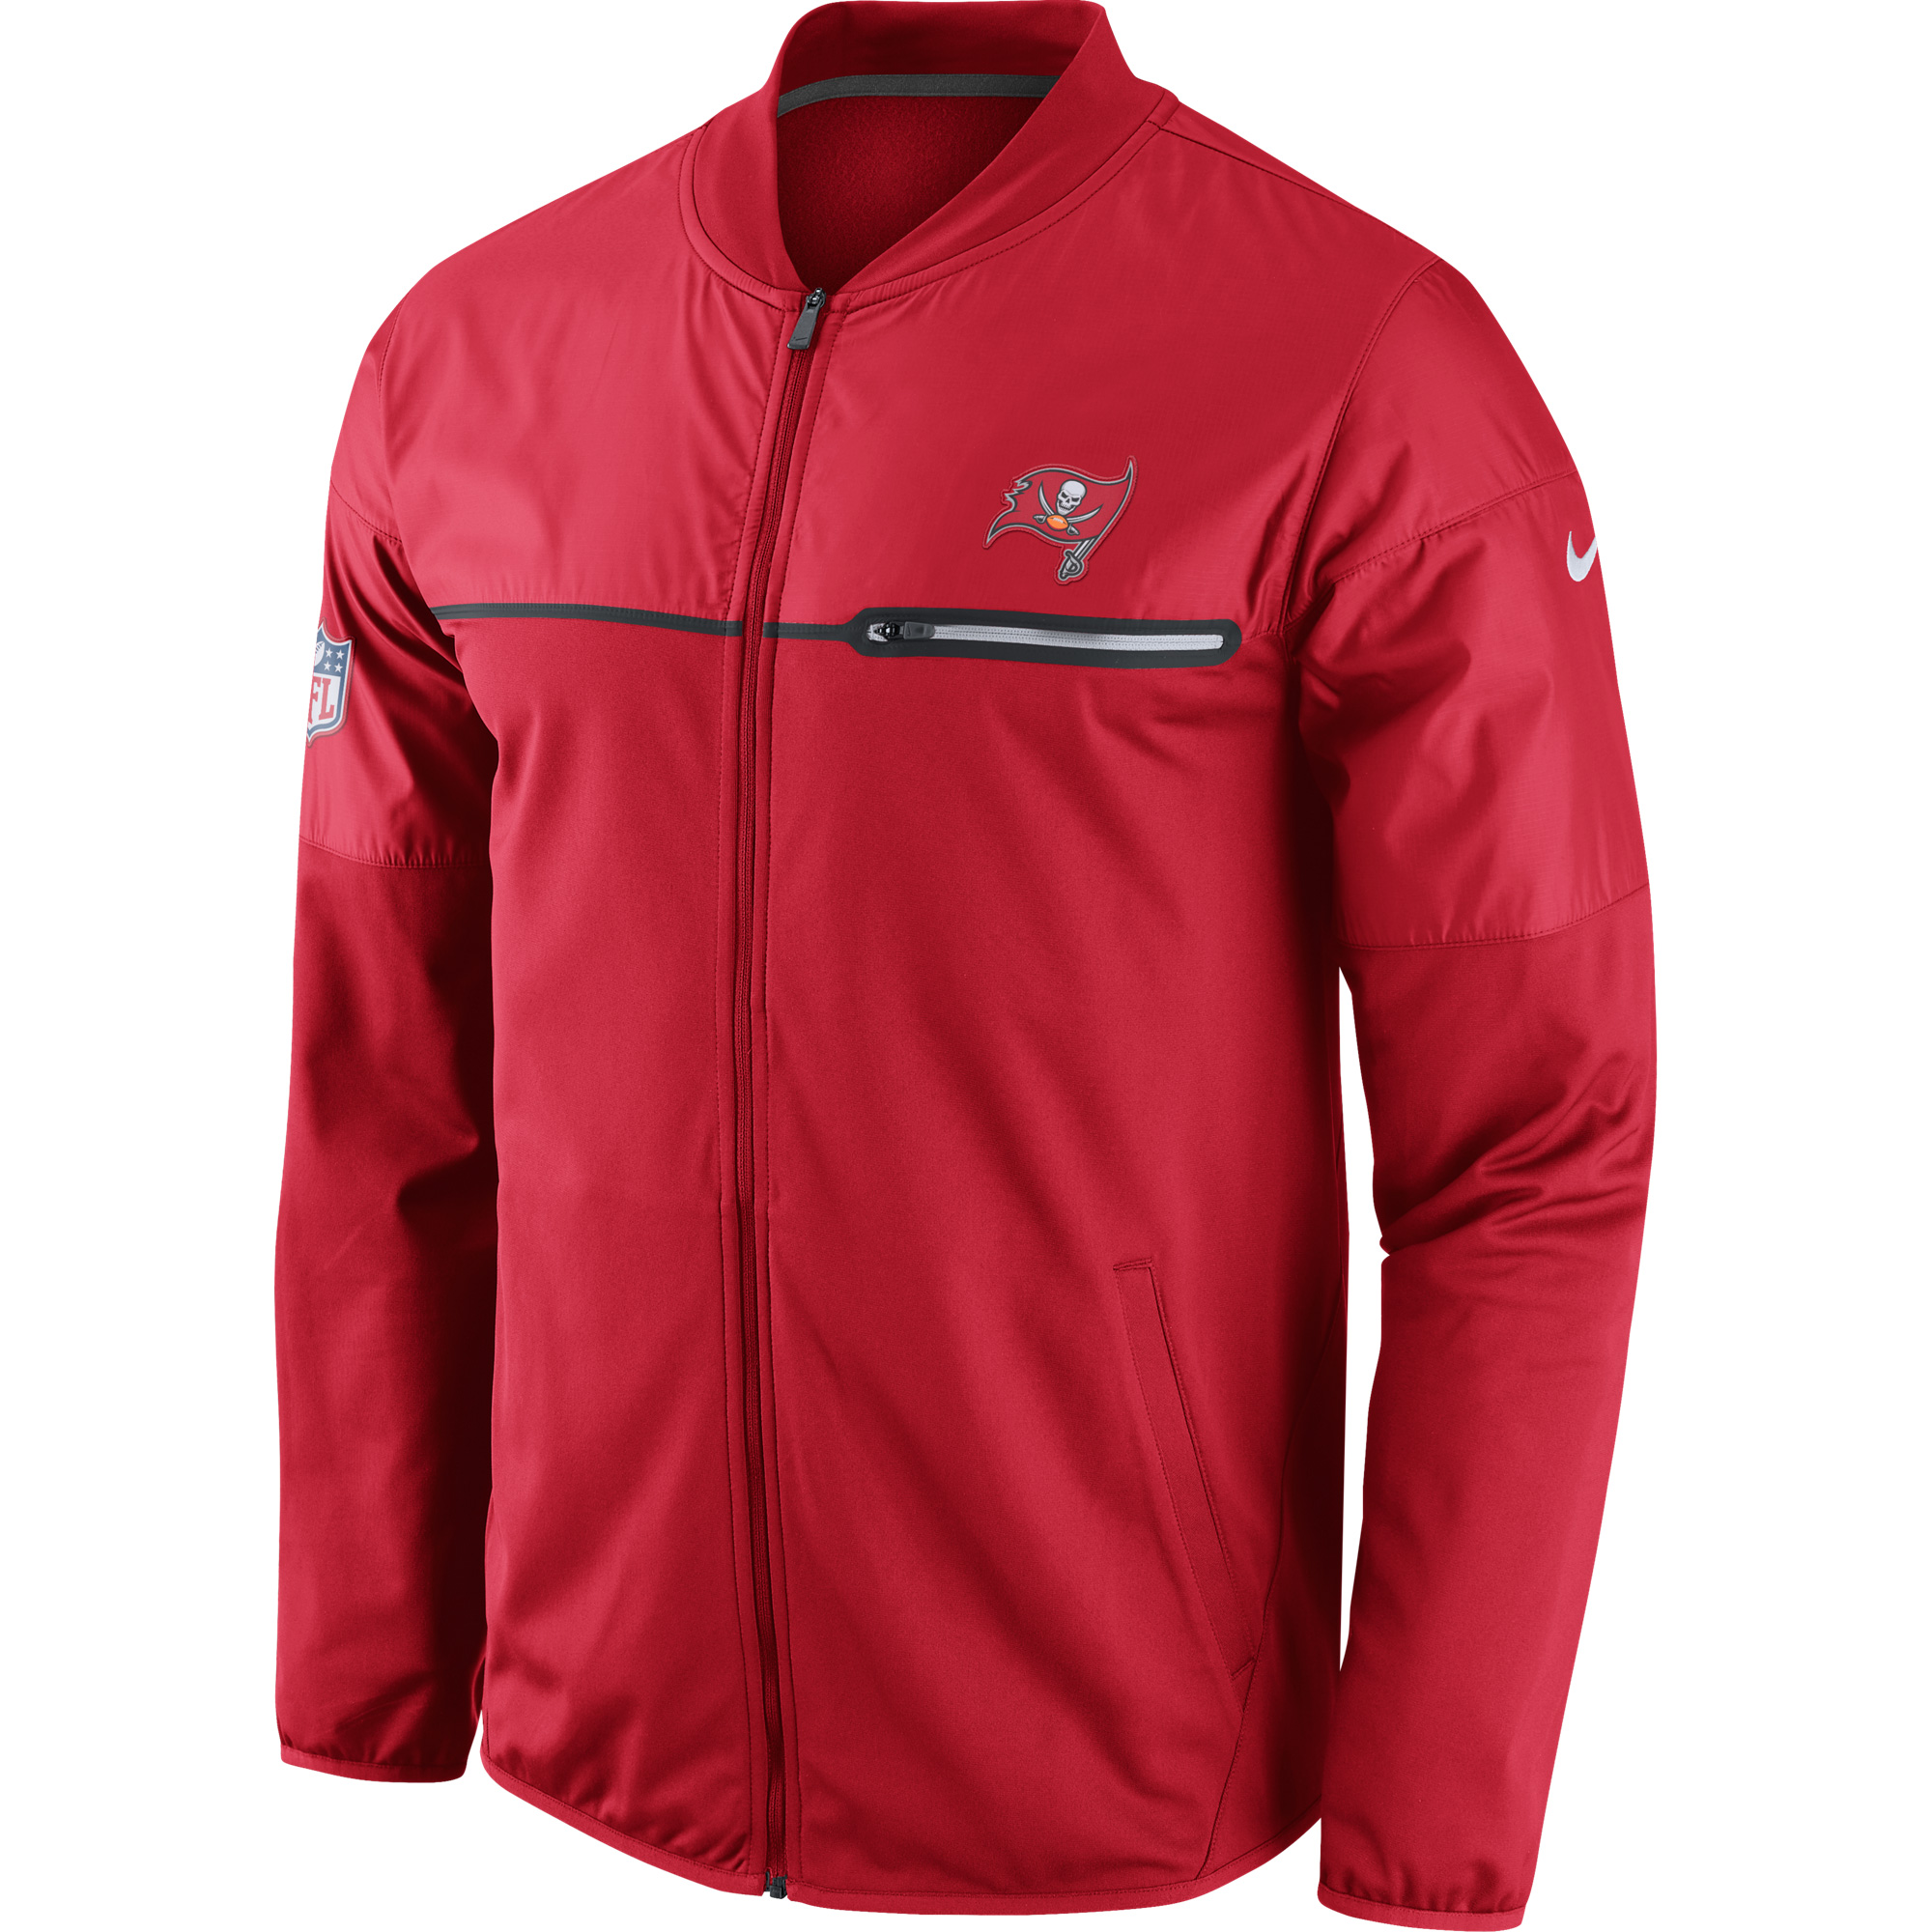 Tampa Bay Buccaneers Nike Elite Hybrid Performance Jacket Red